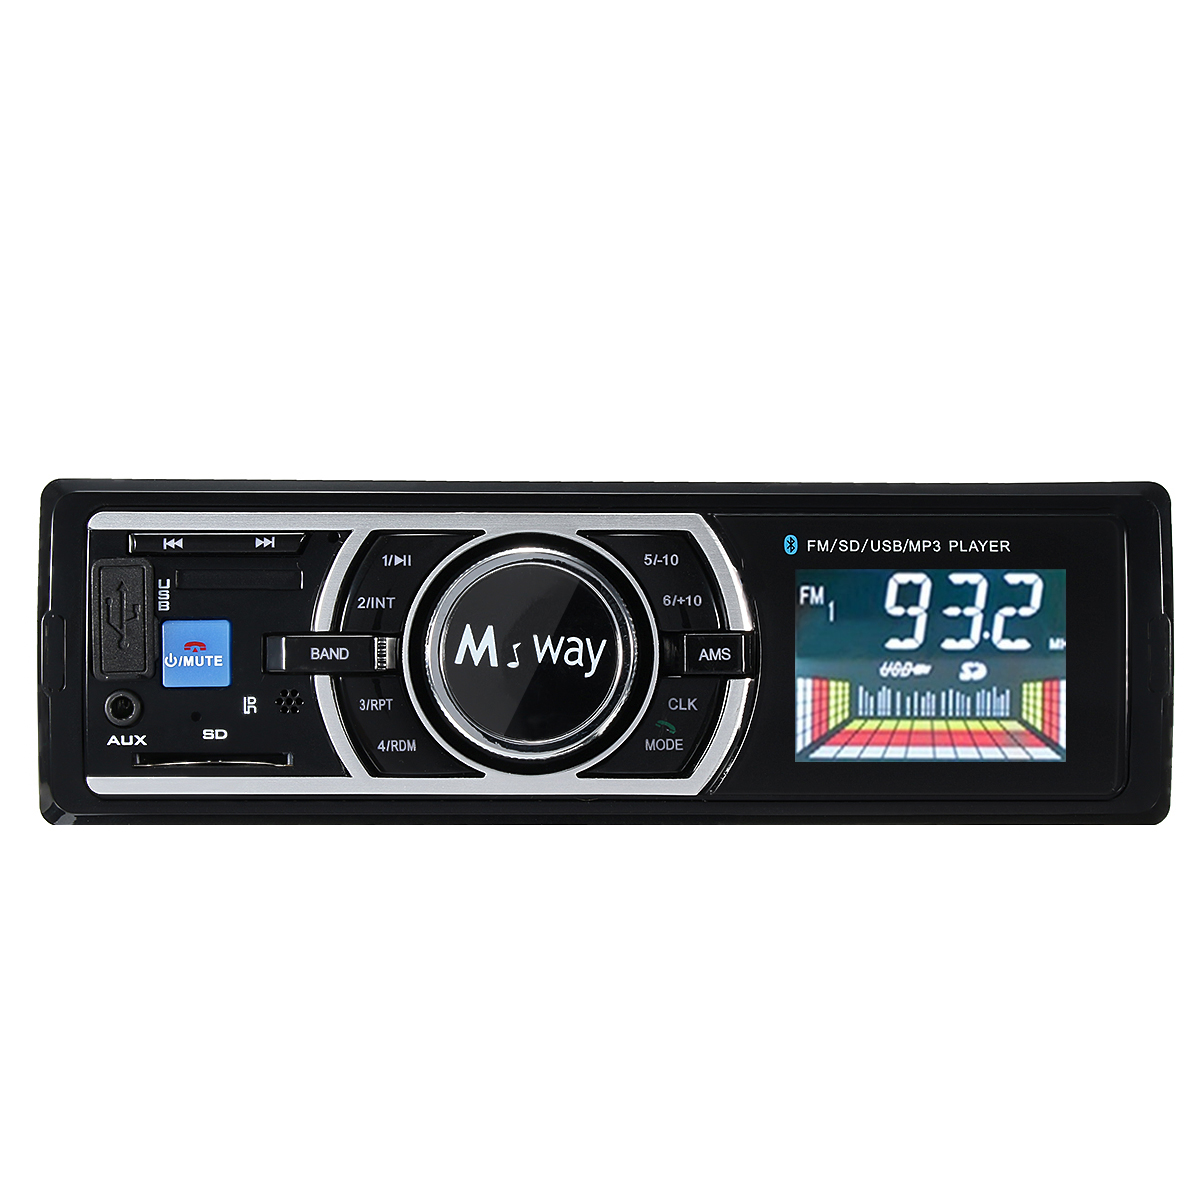 High Resolution LCD Single DIN Car Stereo Receiver with Built-In Bluetooth, USB, MP3 Player & Two 2-Way High Performance 240 Watt Car Speakers